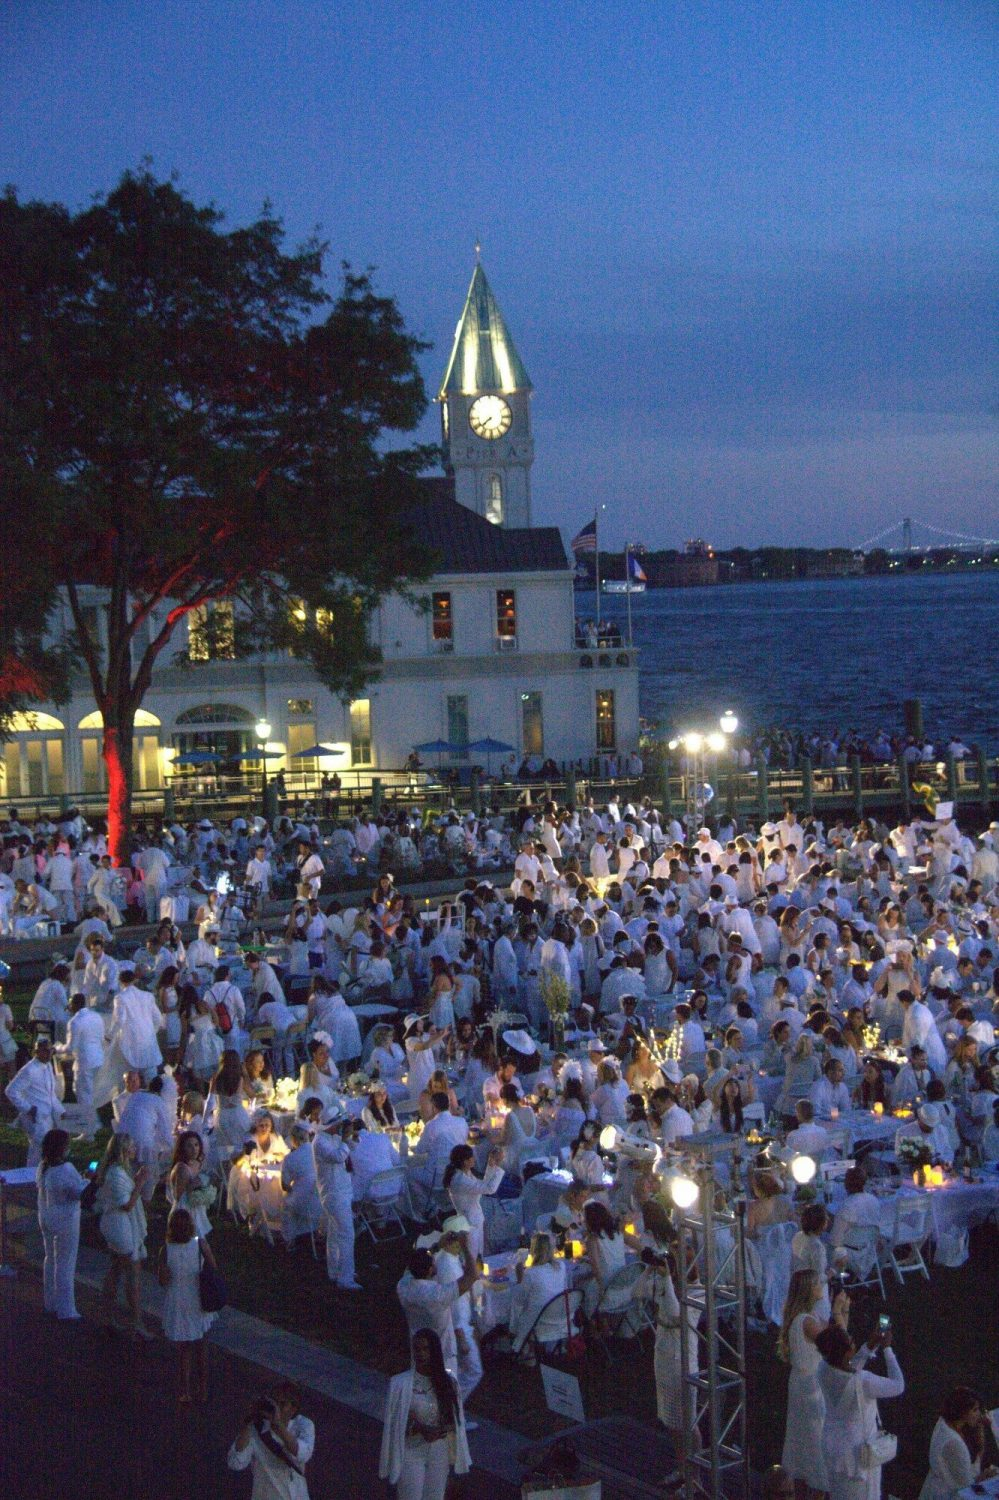 Chef Todd English, Battery Park City Authority's Shari C. Hyman & others on Le Dîner en Blanc's 2016 New York Event